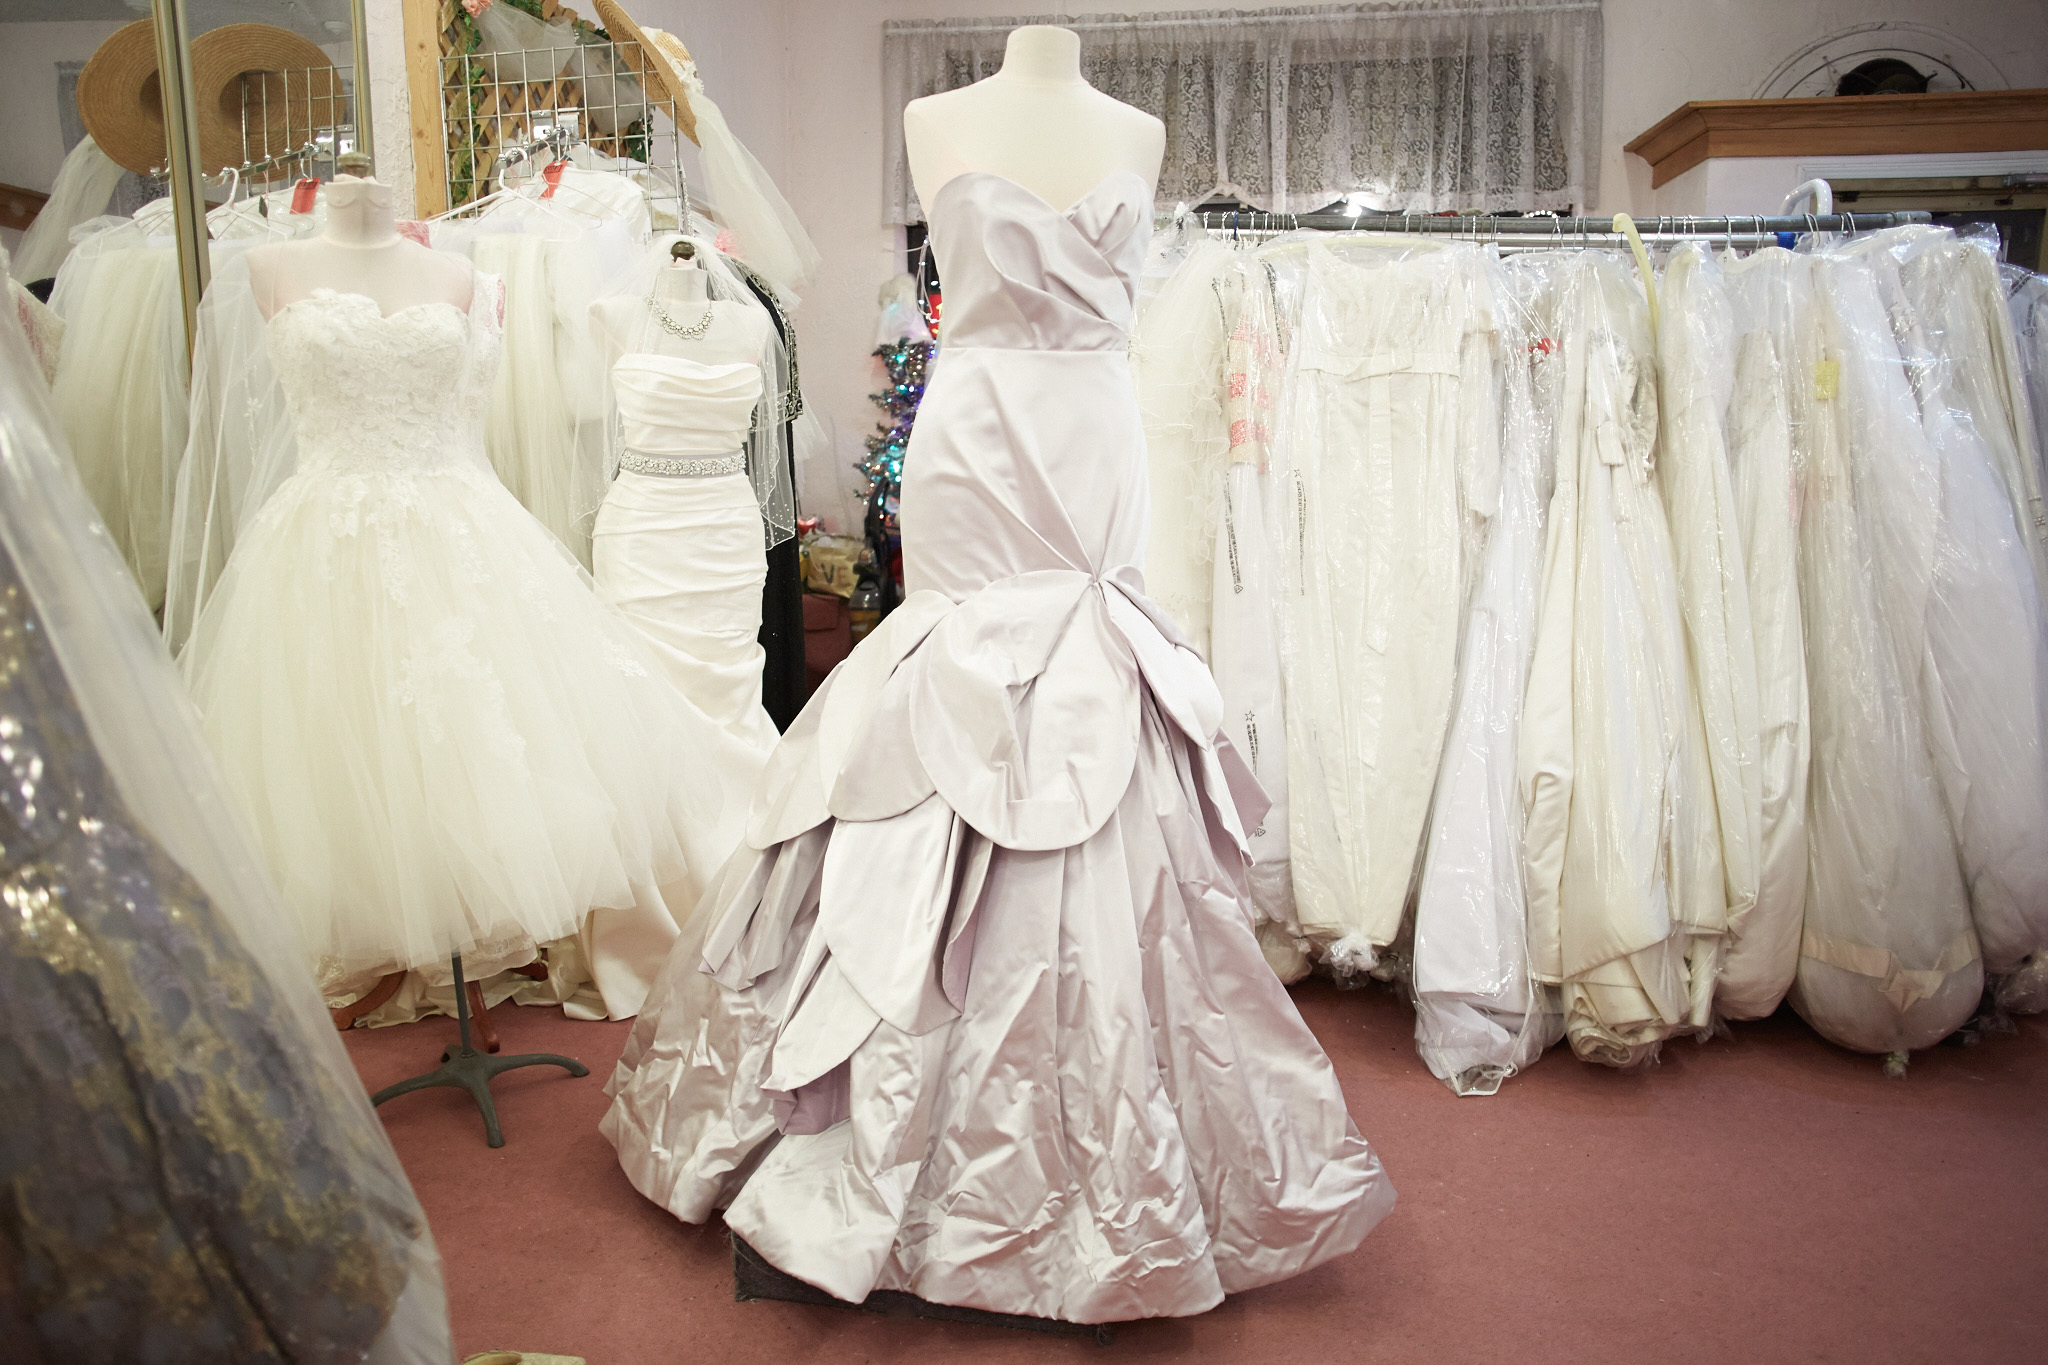 I Do Designer Bridal Consignment | Shopping in Dunning, Oak Park